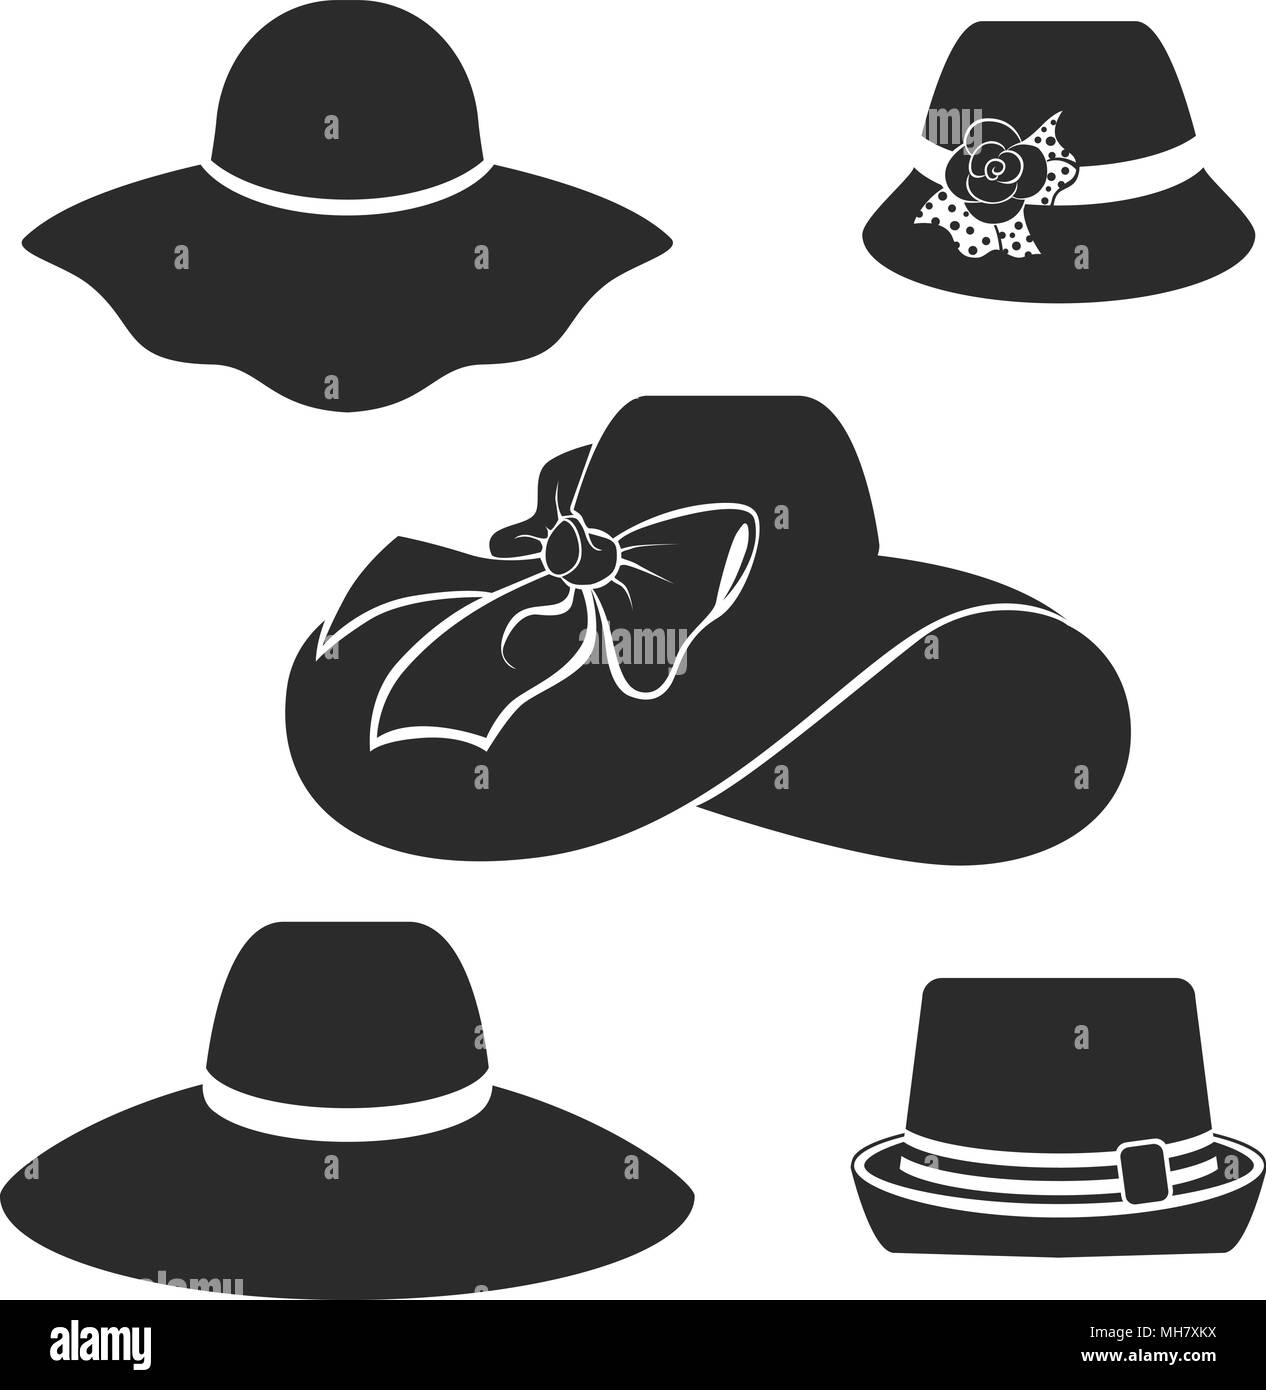 vector black hats icons set - Stock Image